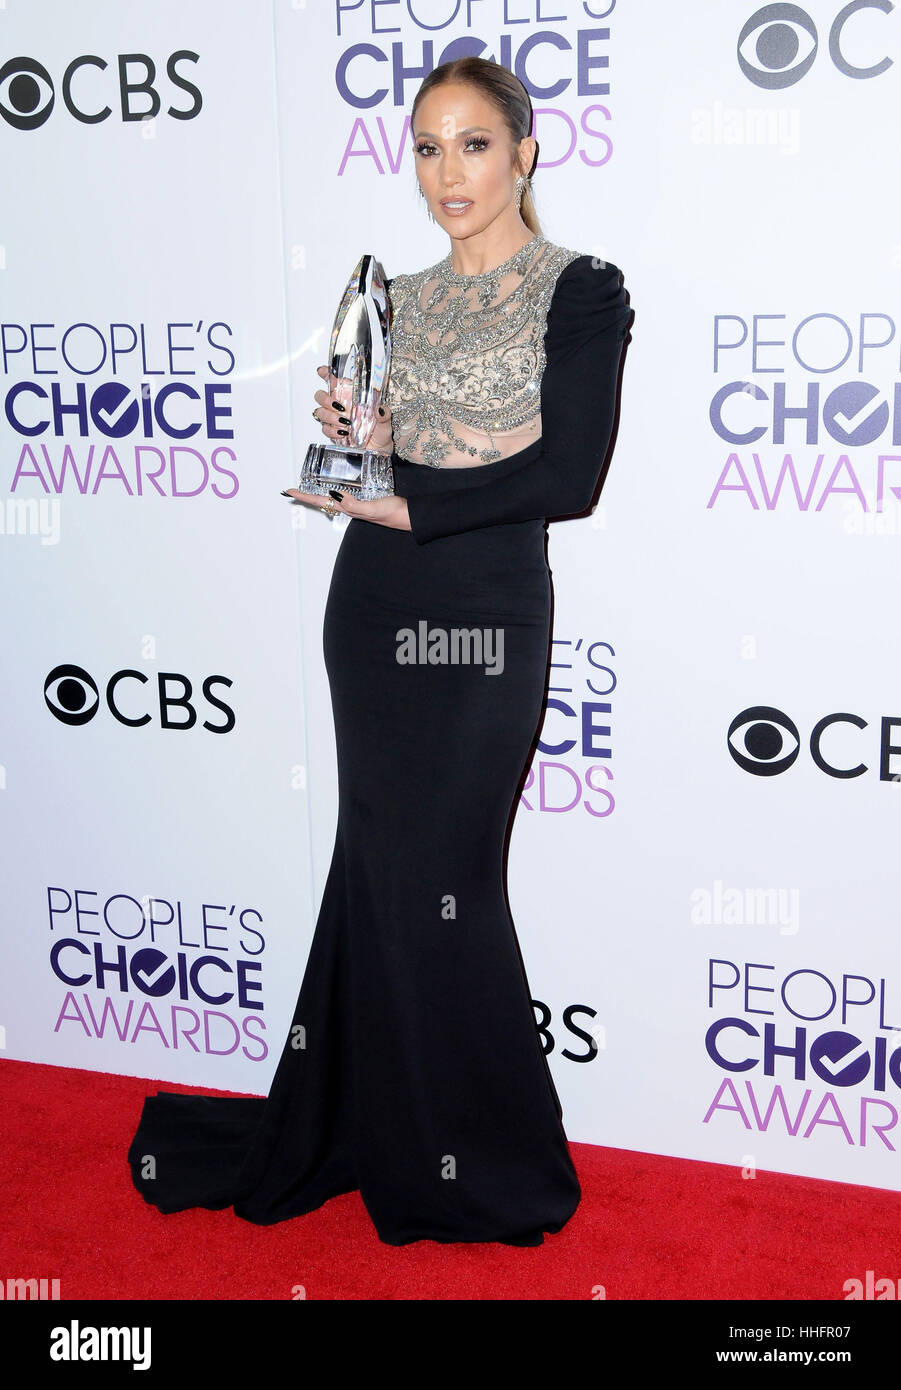 Los Angeles, CA, EE.UU. 18 ene, 2017. Jennifer López. 2017 People's Choice Awards 2017 Sala de prensa celebrada Imagen De Stock